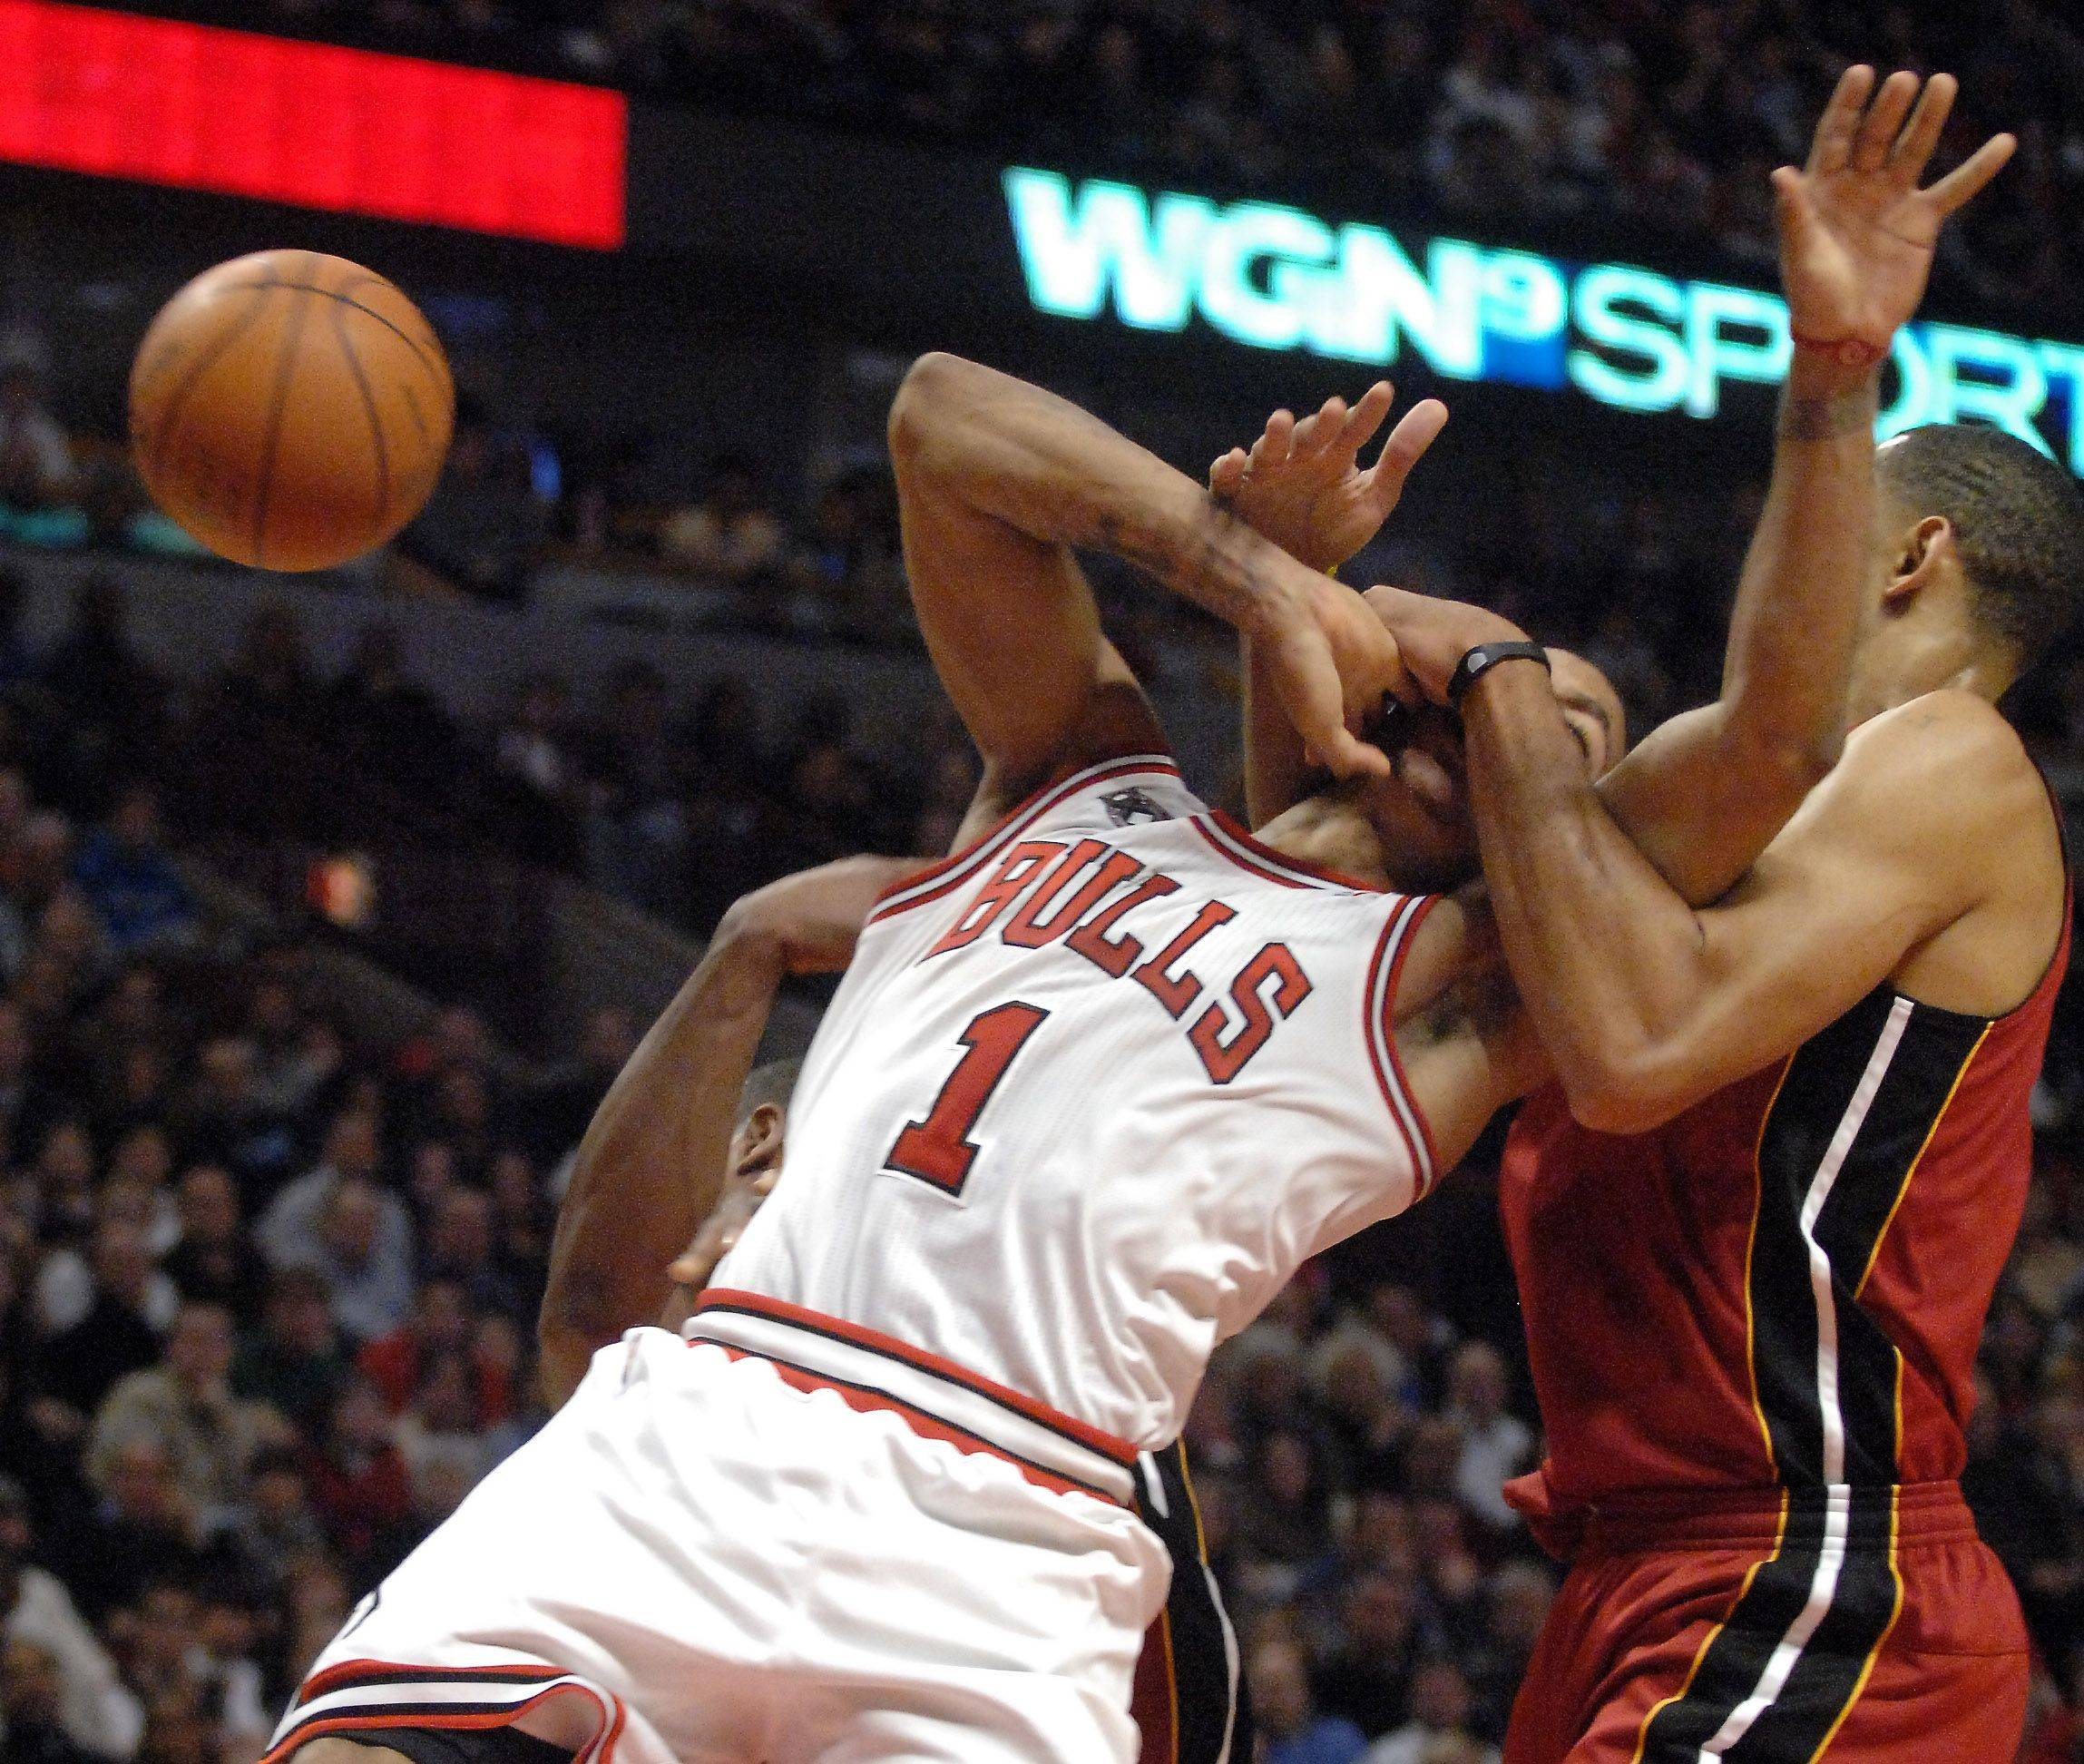 Chicago Bulls point guard Derrick Rose is fouled hard by Miami Heat power forward Juwan Howard during Saturday's game at the United Center in Chicago.